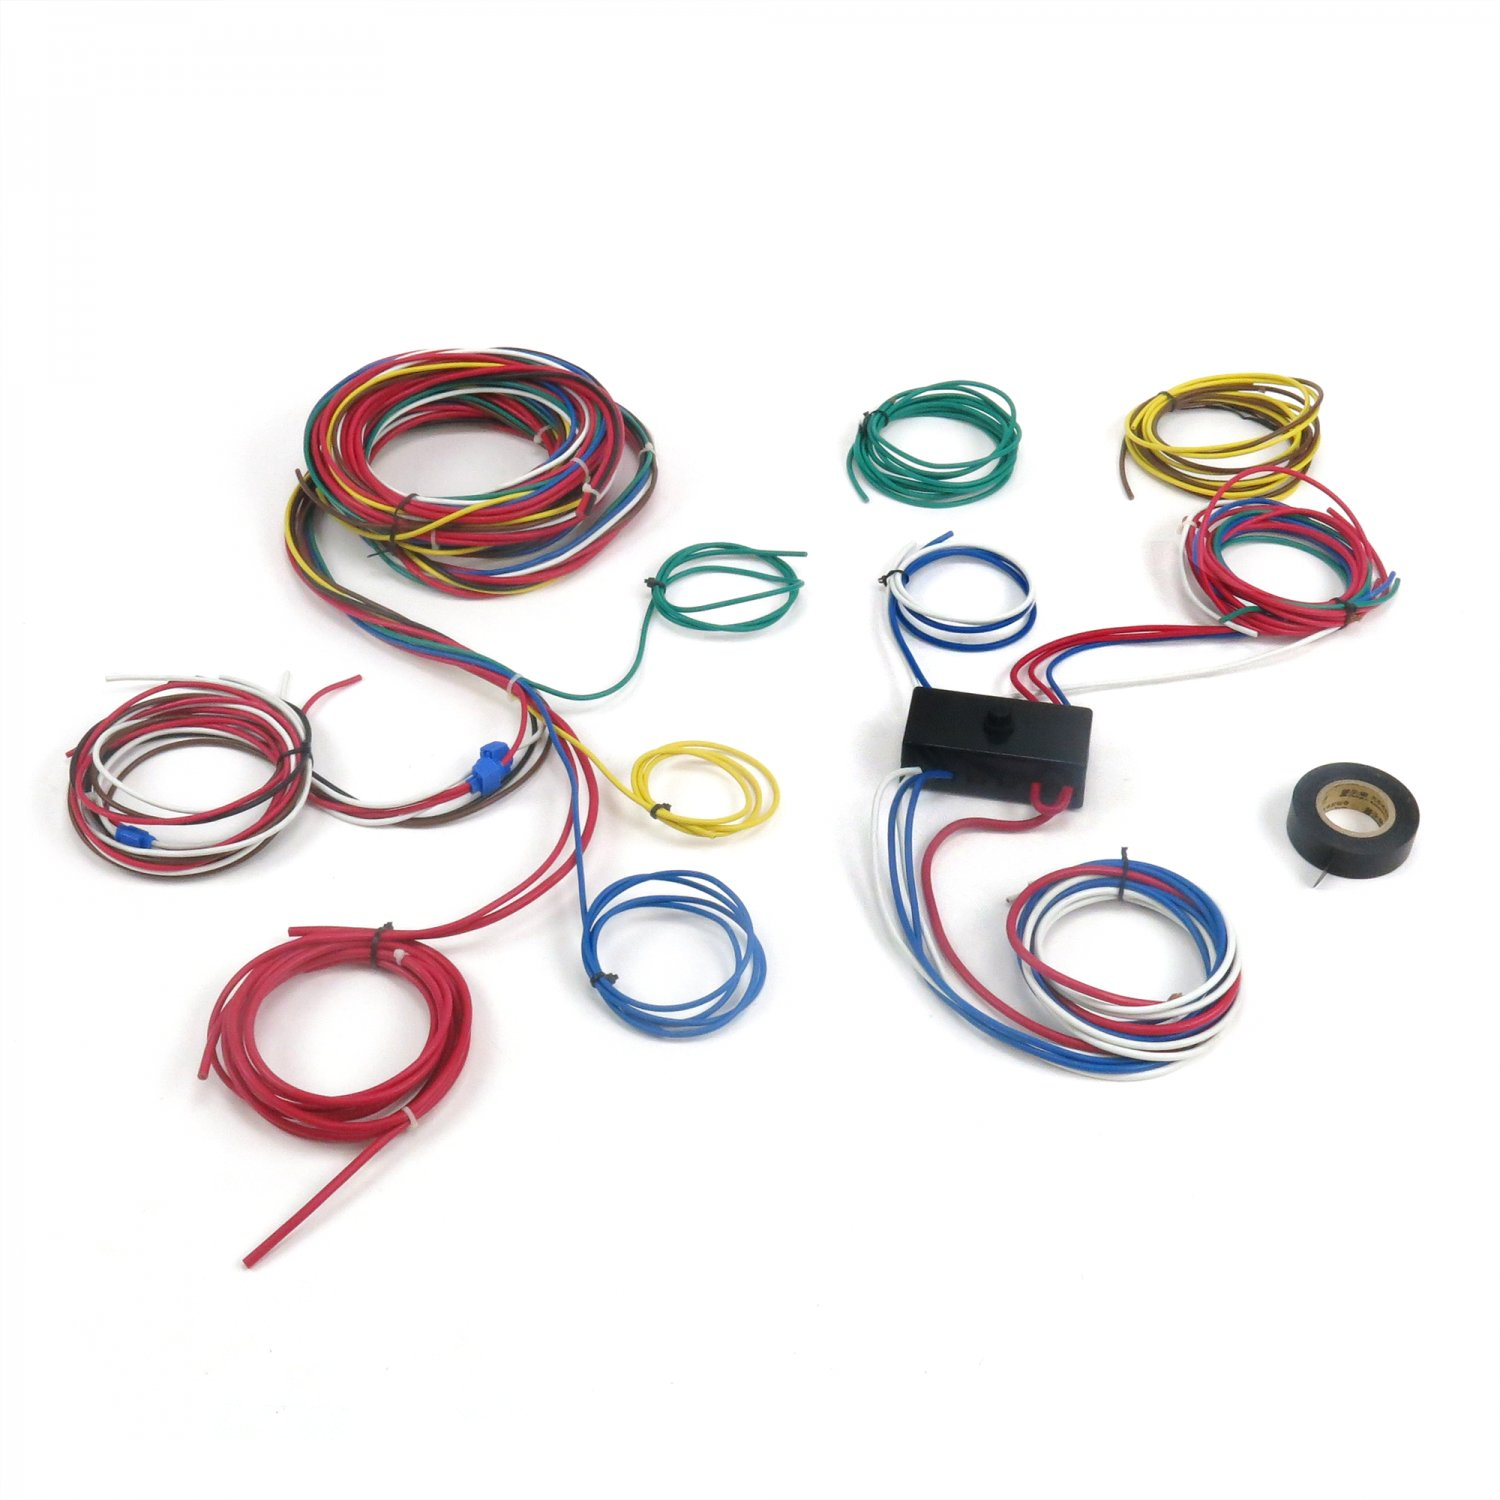 1500 dune buggy universal wiring harness w fuse box fits empi 9466 vw VW Wiring Harness Kits at metegol.co